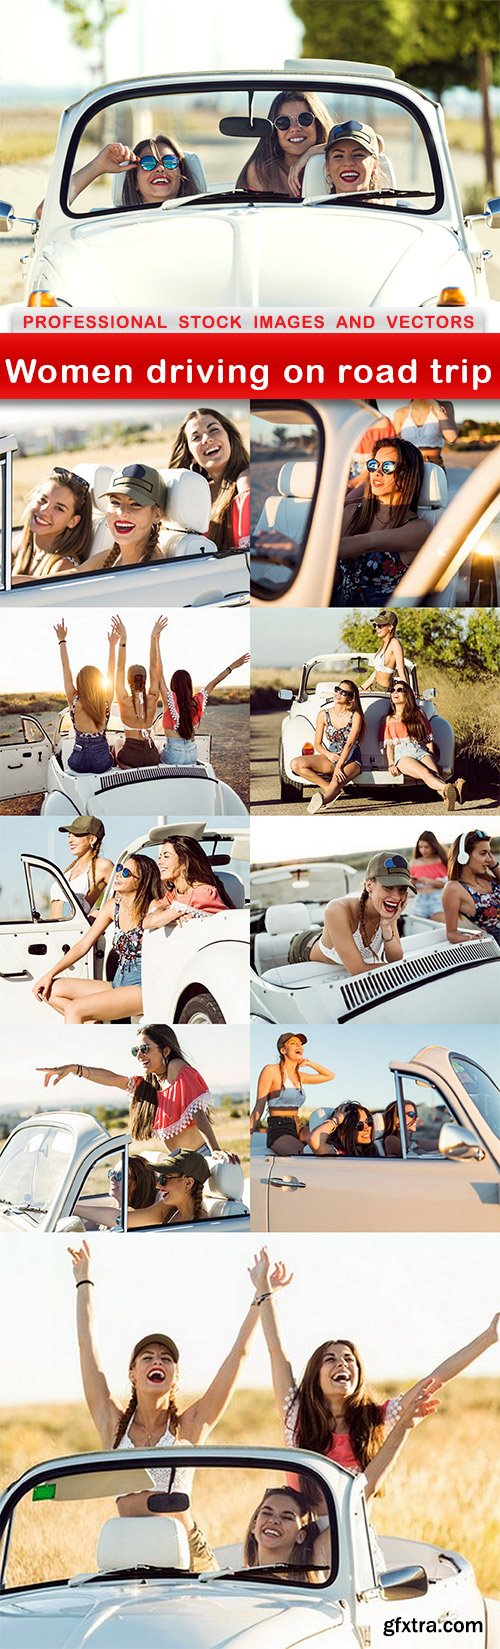 Women driving on road trip - 10 UHQ JPEG